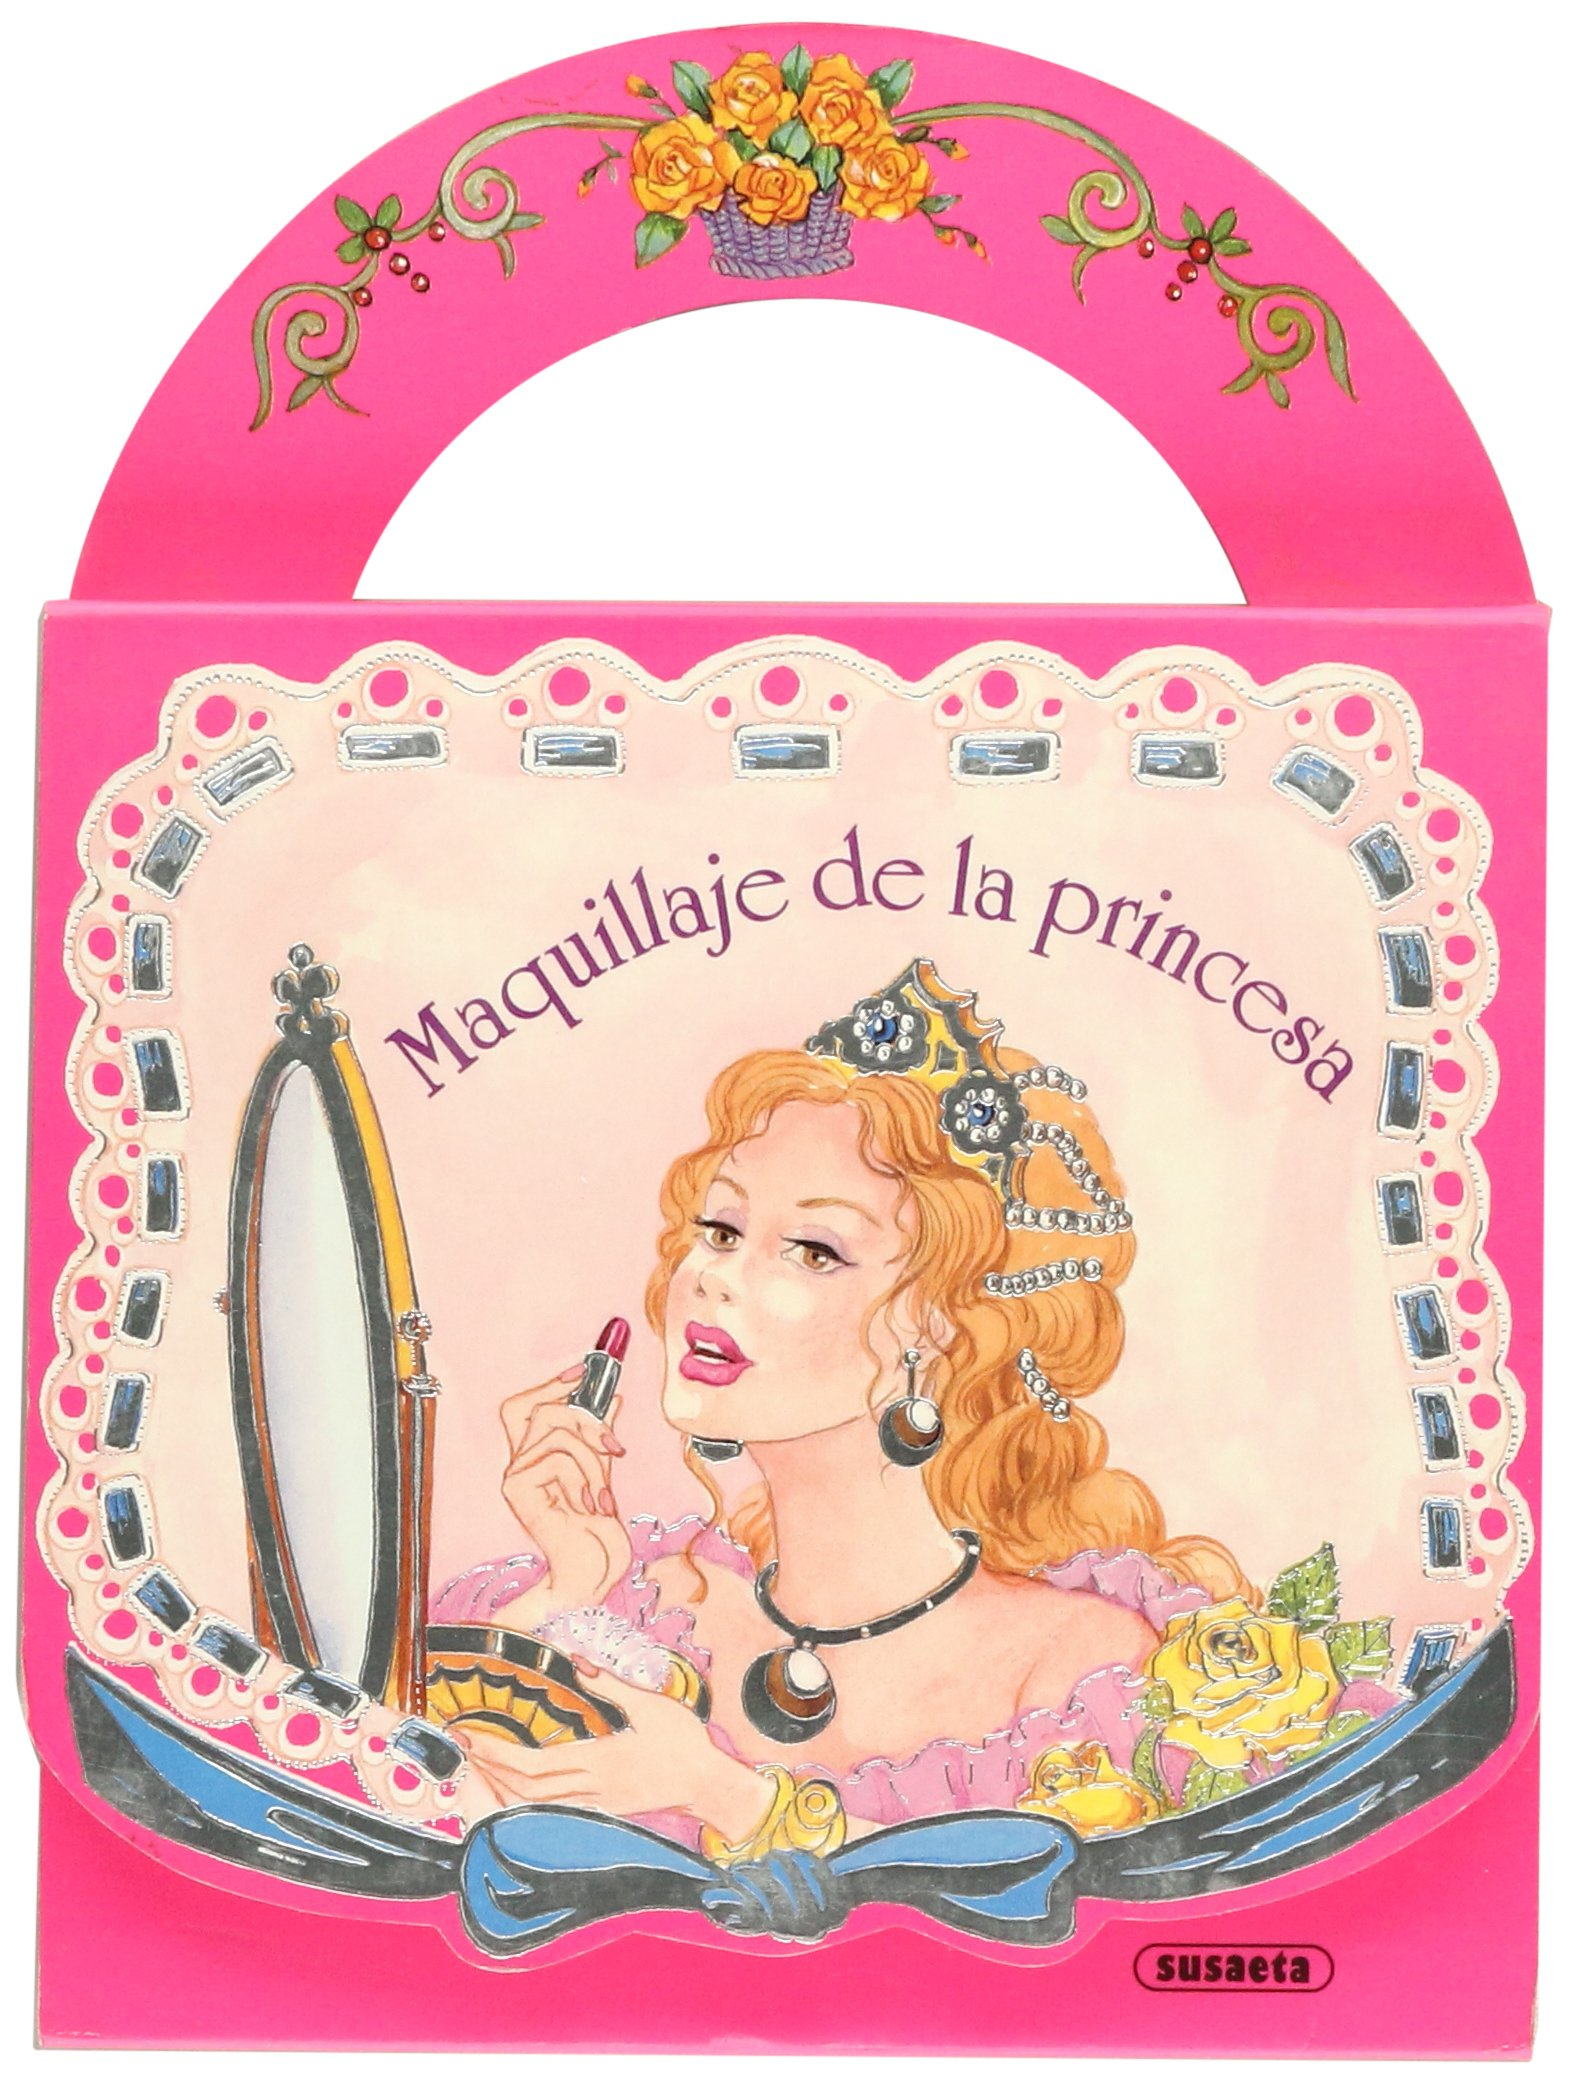 Amazon.com: Maquillaje de La Princesa (Spanish Edition) (9788430553457): Carmen Guerra: Books